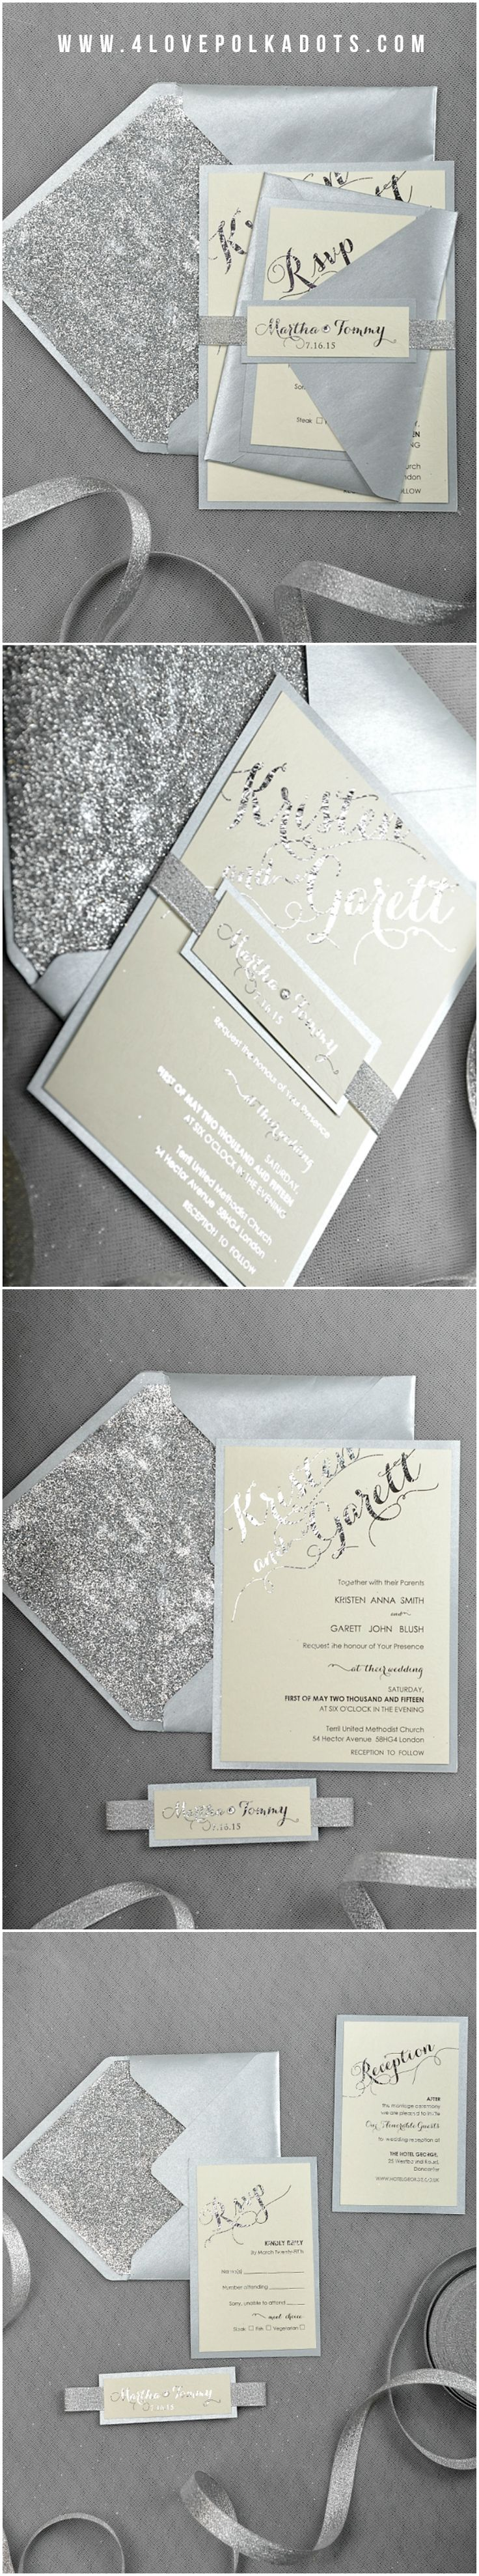 Silver Glitter Wedding Invitations #elegant #silver #glitter #sparkling #shiny #weddingideas #weddinginvitations #glamorous #silverwedding